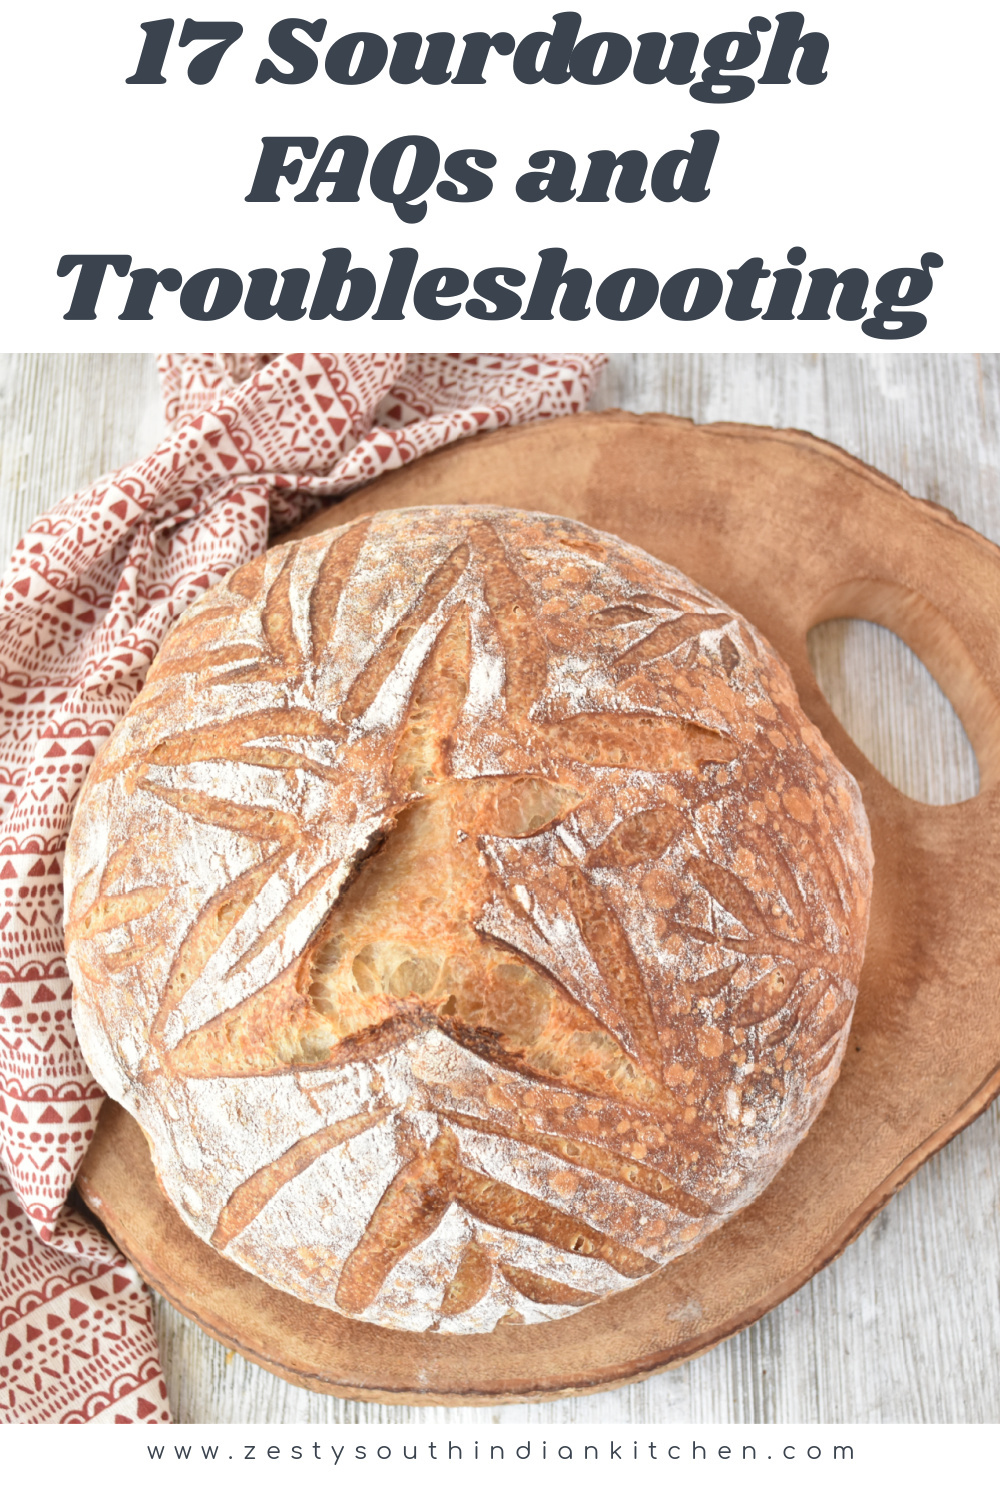 17 Sourdough FAQs and Troubleshooting